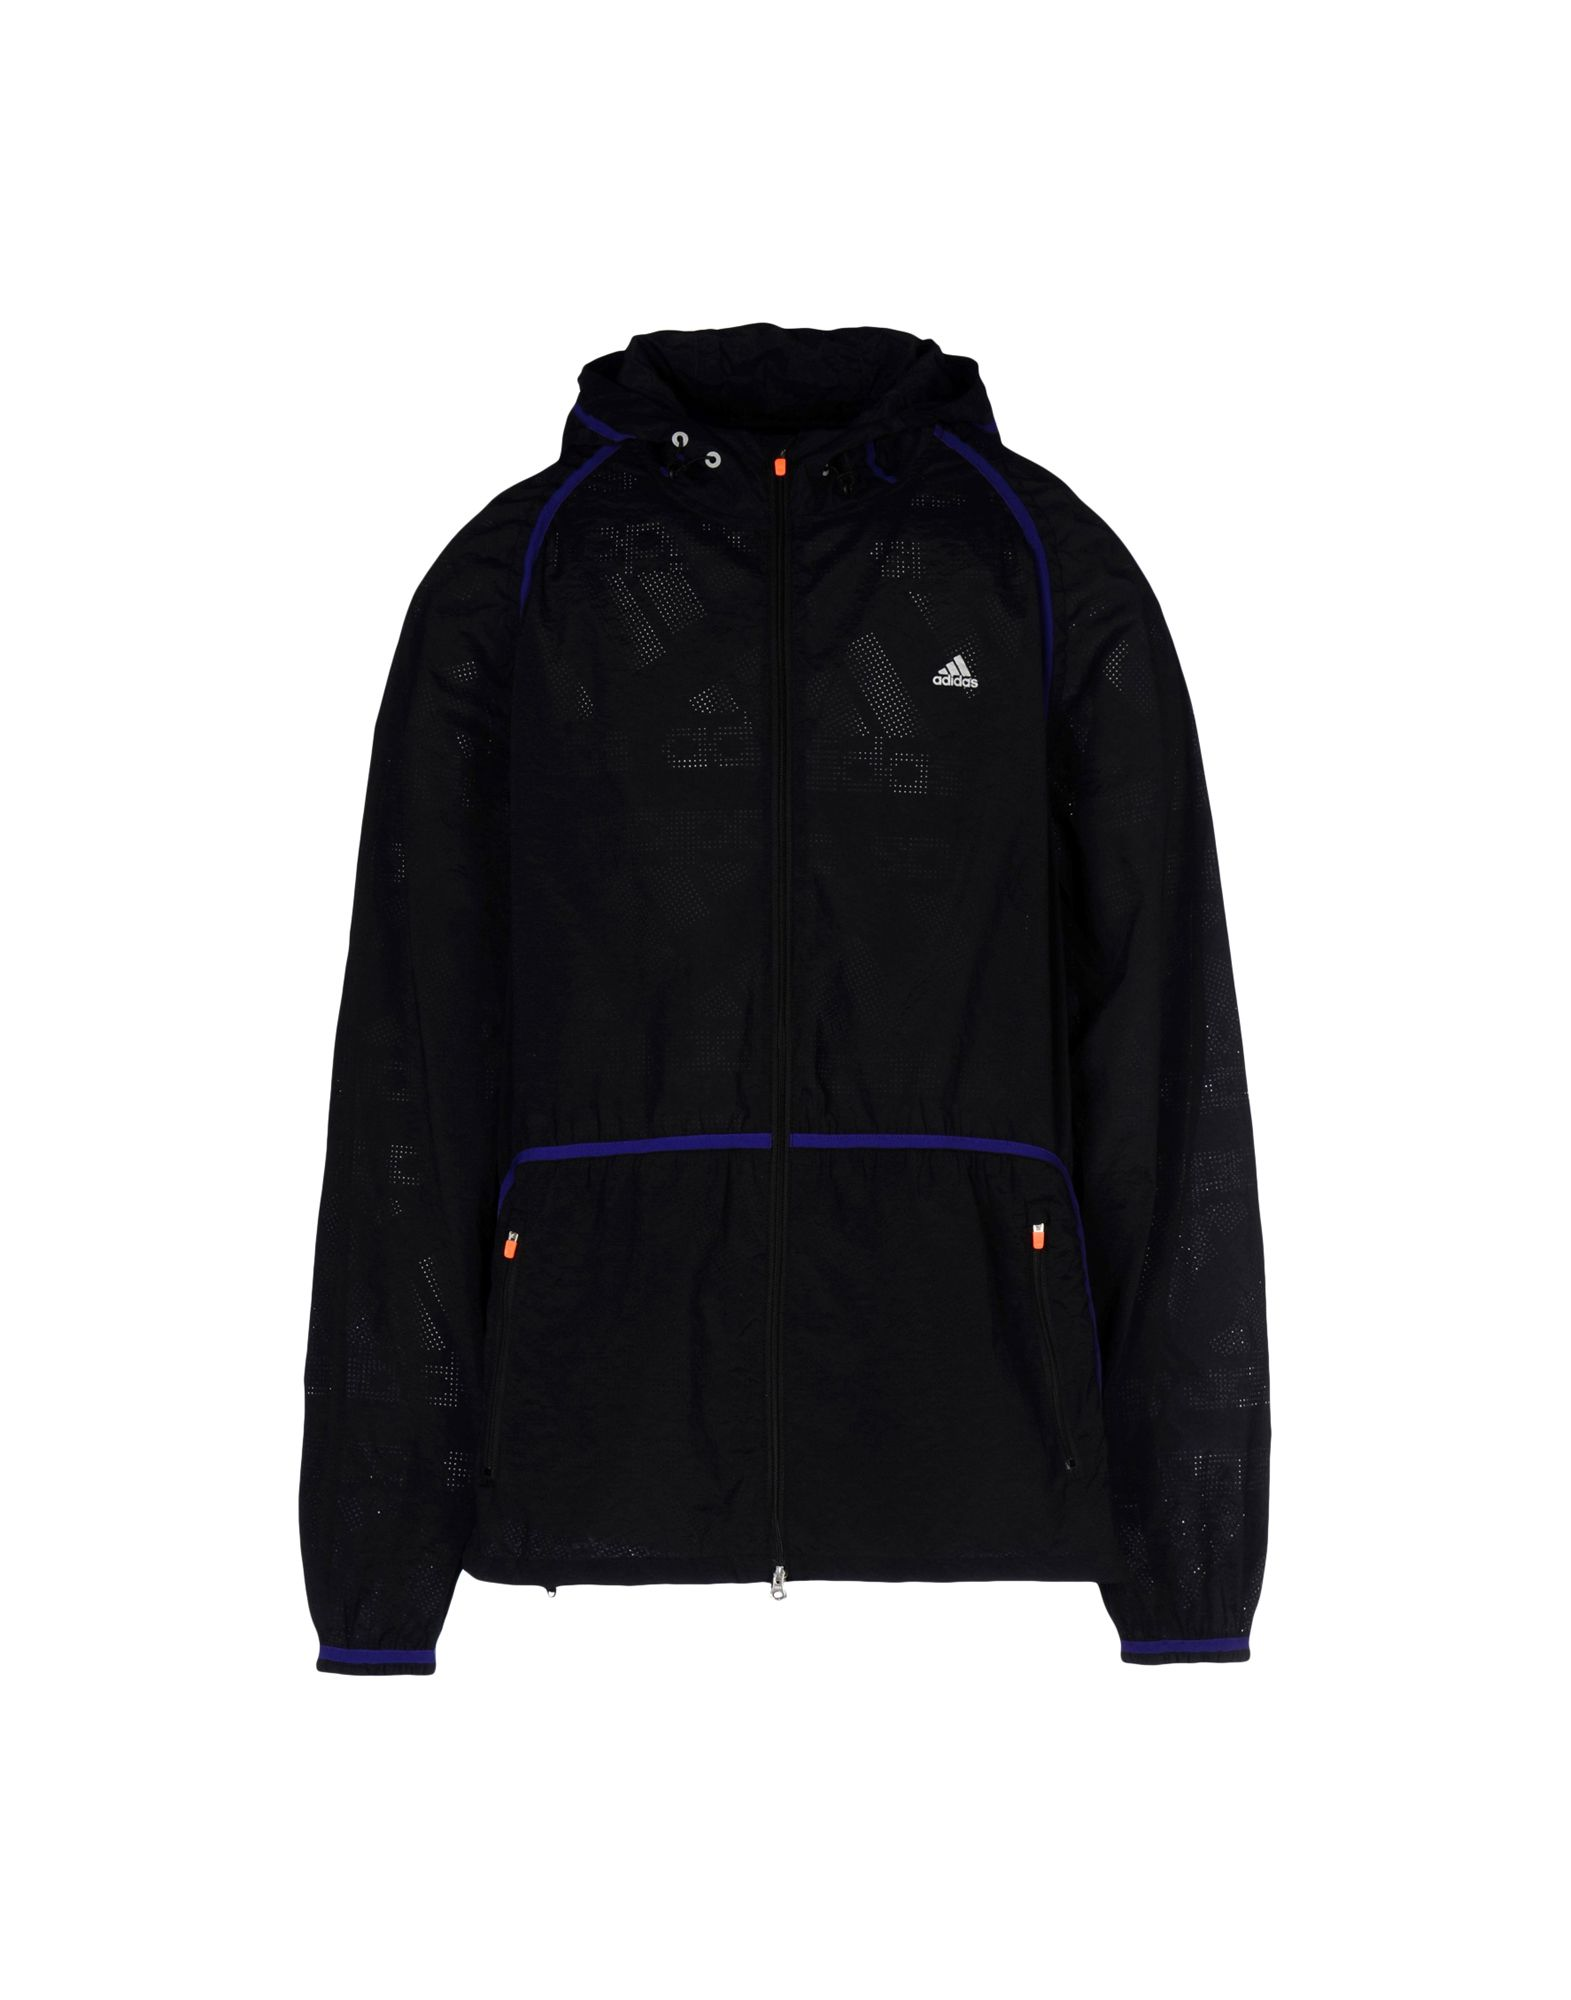 Giubbotto Adidas By Kolor Wvn Jacket Logo Perforated Woven Jacket - Uomo - Acquista online su